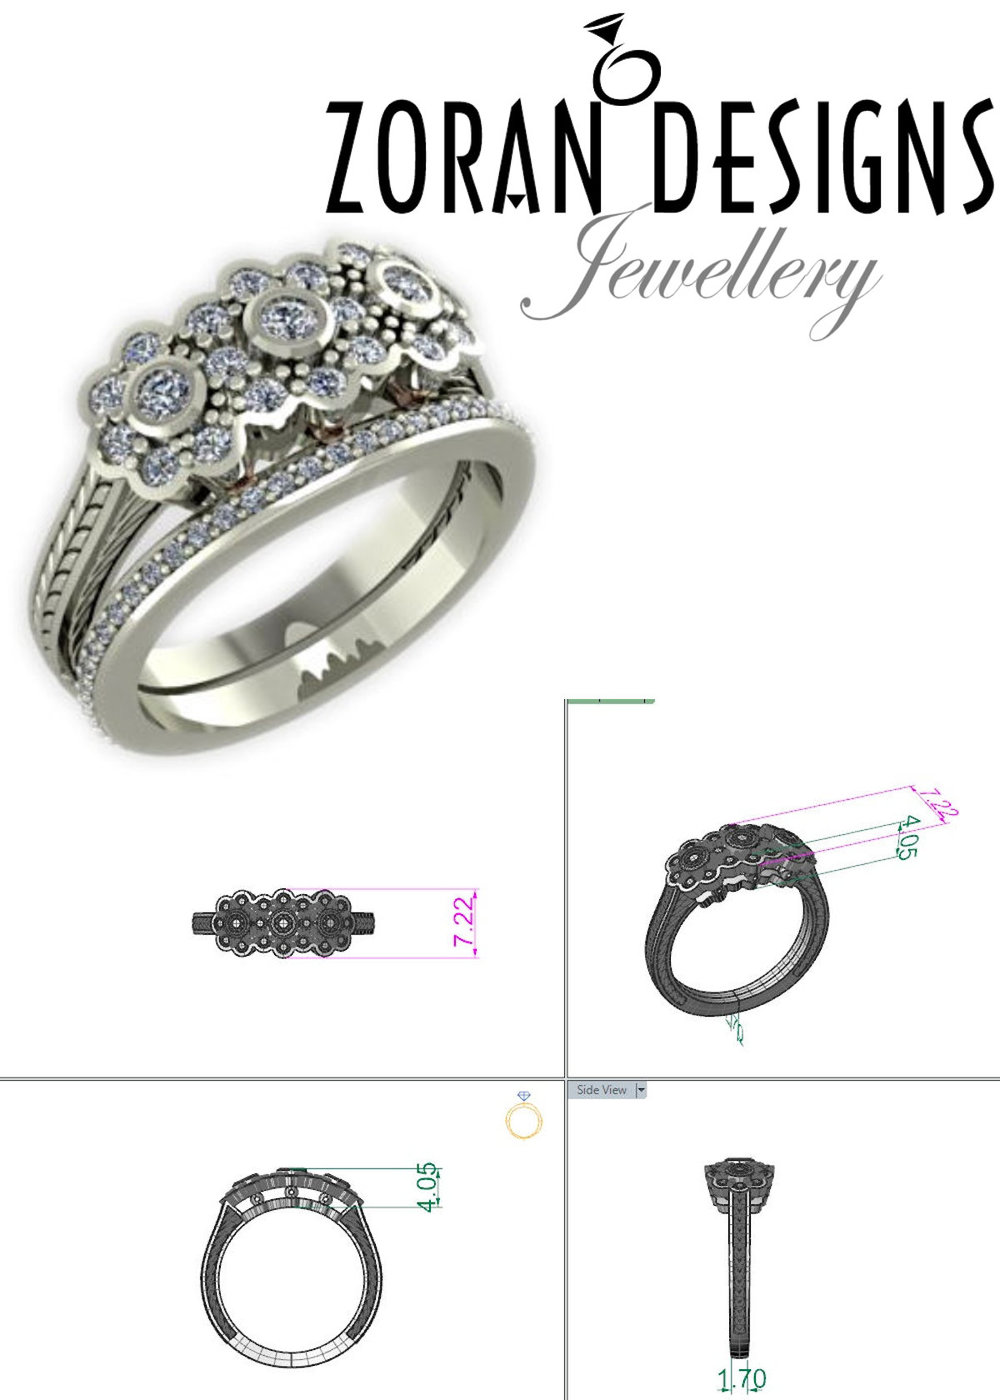 custom made daisy design engagement ring.jpg